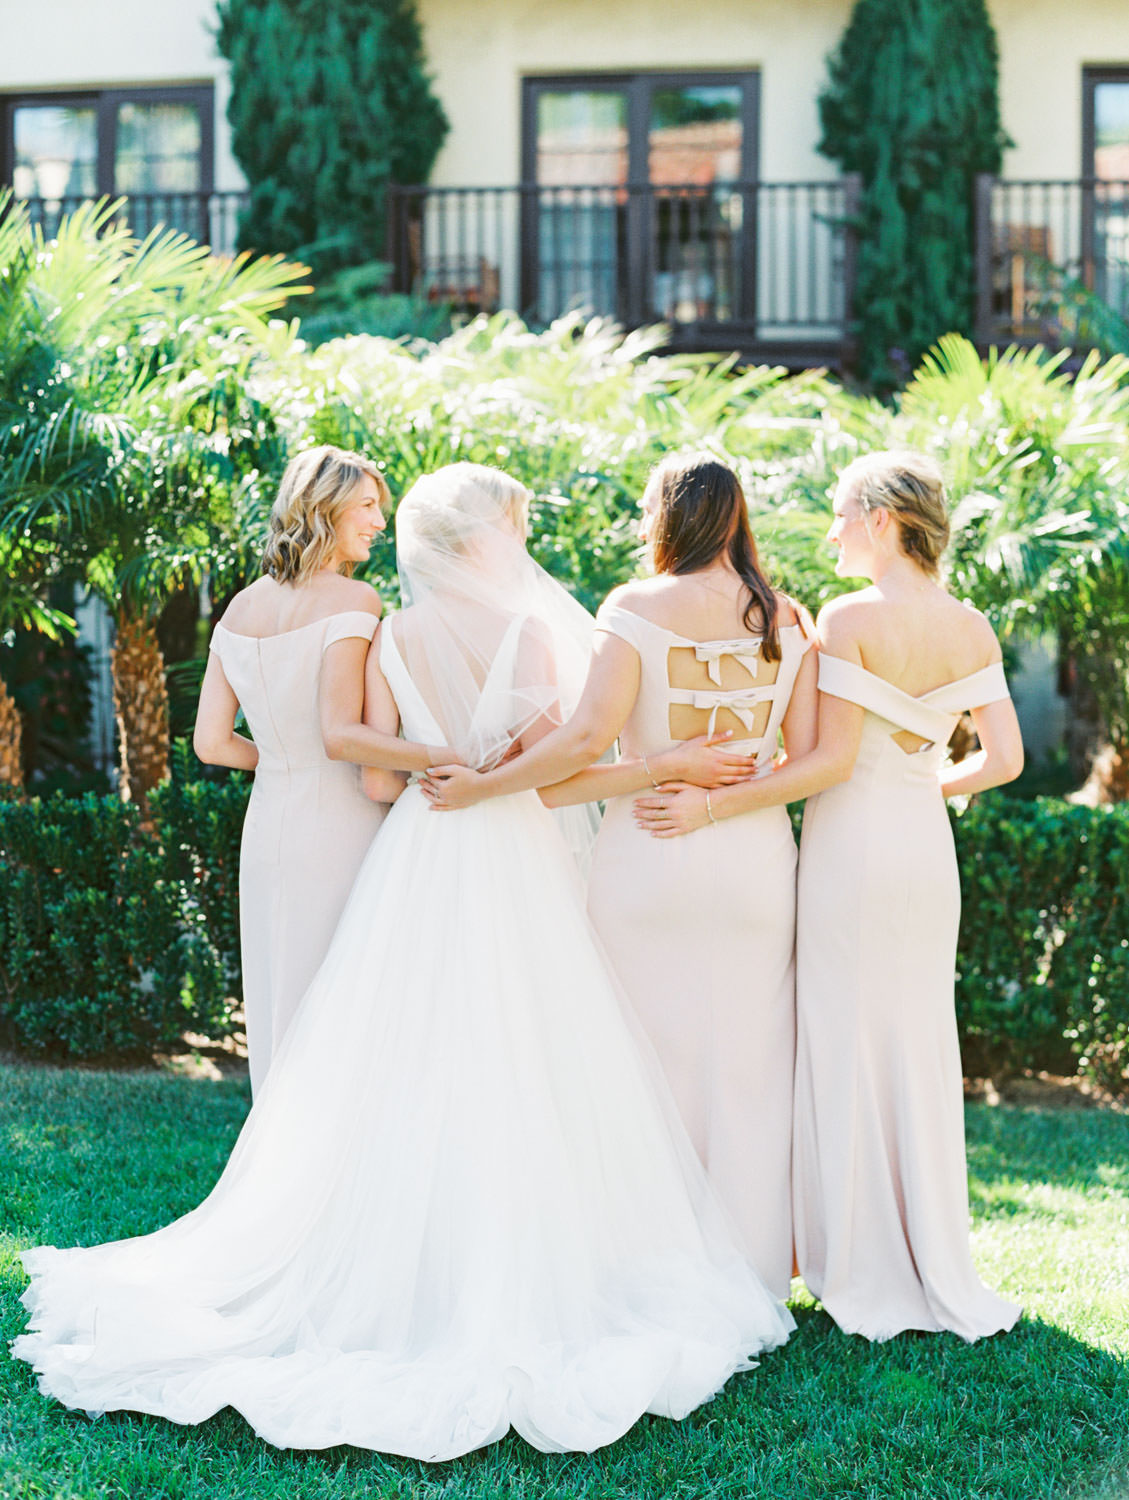 Bridal party portrait with blush gowns from the back. Bride in Stella York gown with dahlia and rose ivory bouquet with silver dollar eucalyptus. La Jolla wedding shot on film by Cavin Elizabeth Photography